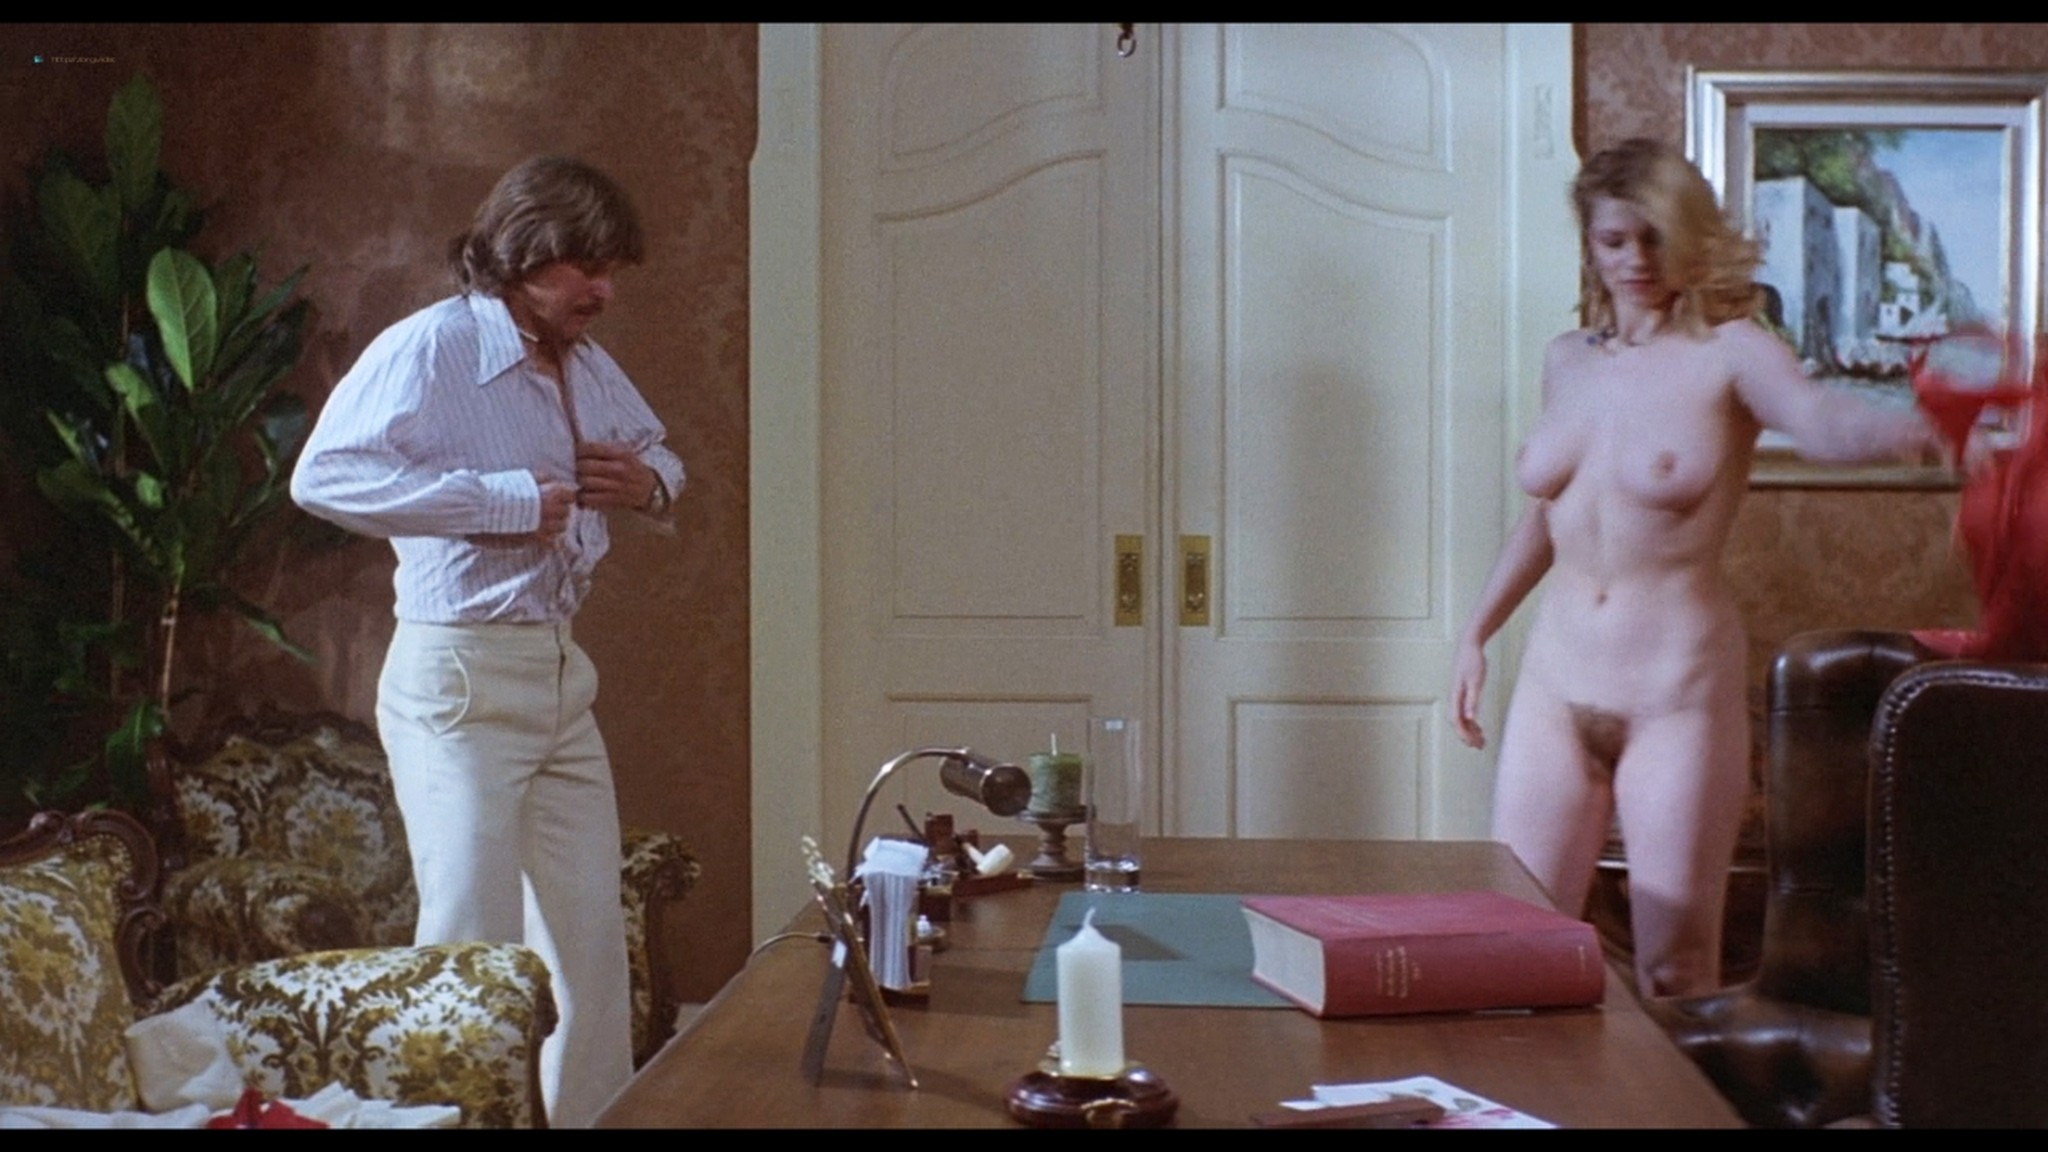 Brigitte Lahaie nude sex Elsa Maroussia and other lots of sex - Swedish Gas Pump Girls (1980) HD 720p BluRay (19)